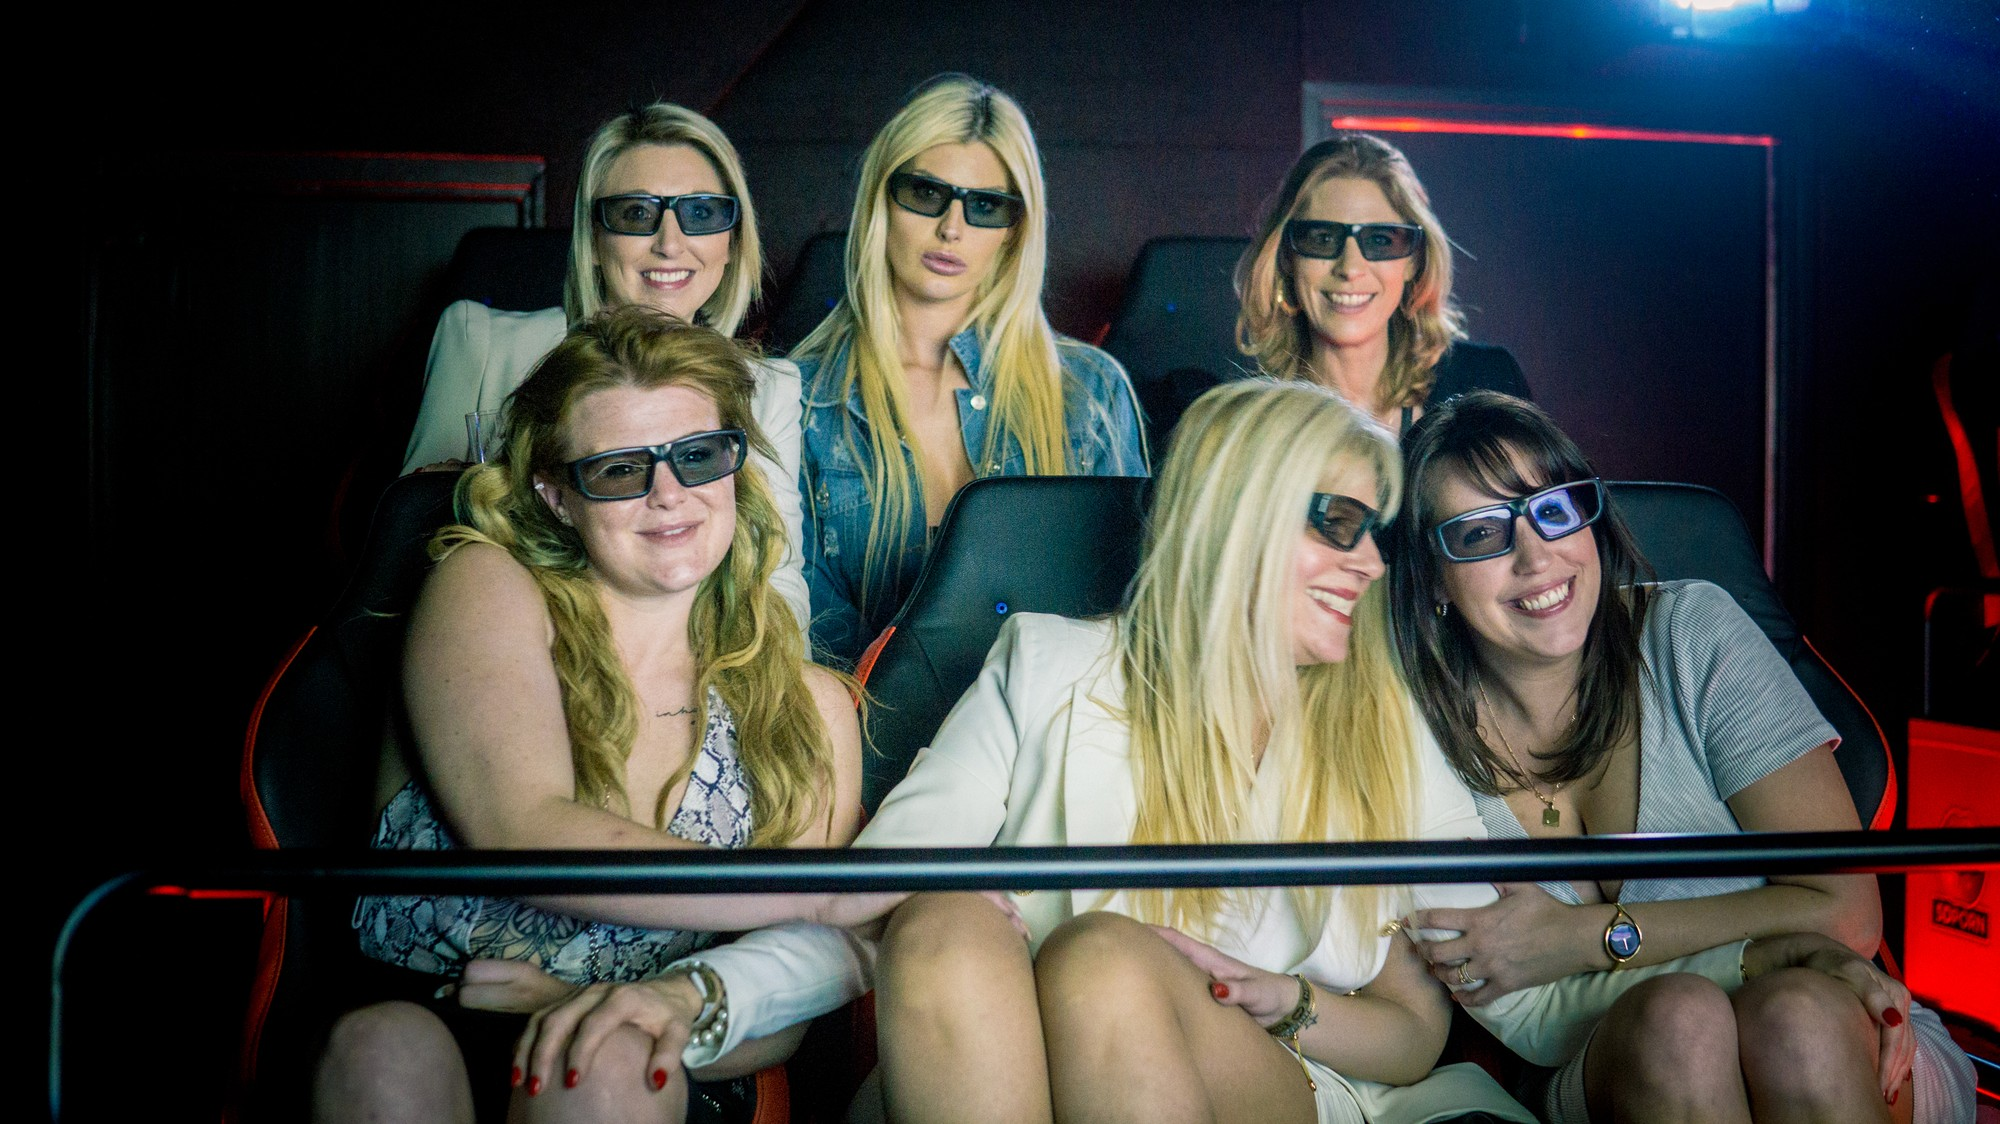 3D Porn No Glasses the world's first 5d porn theater is a wild ride - vice